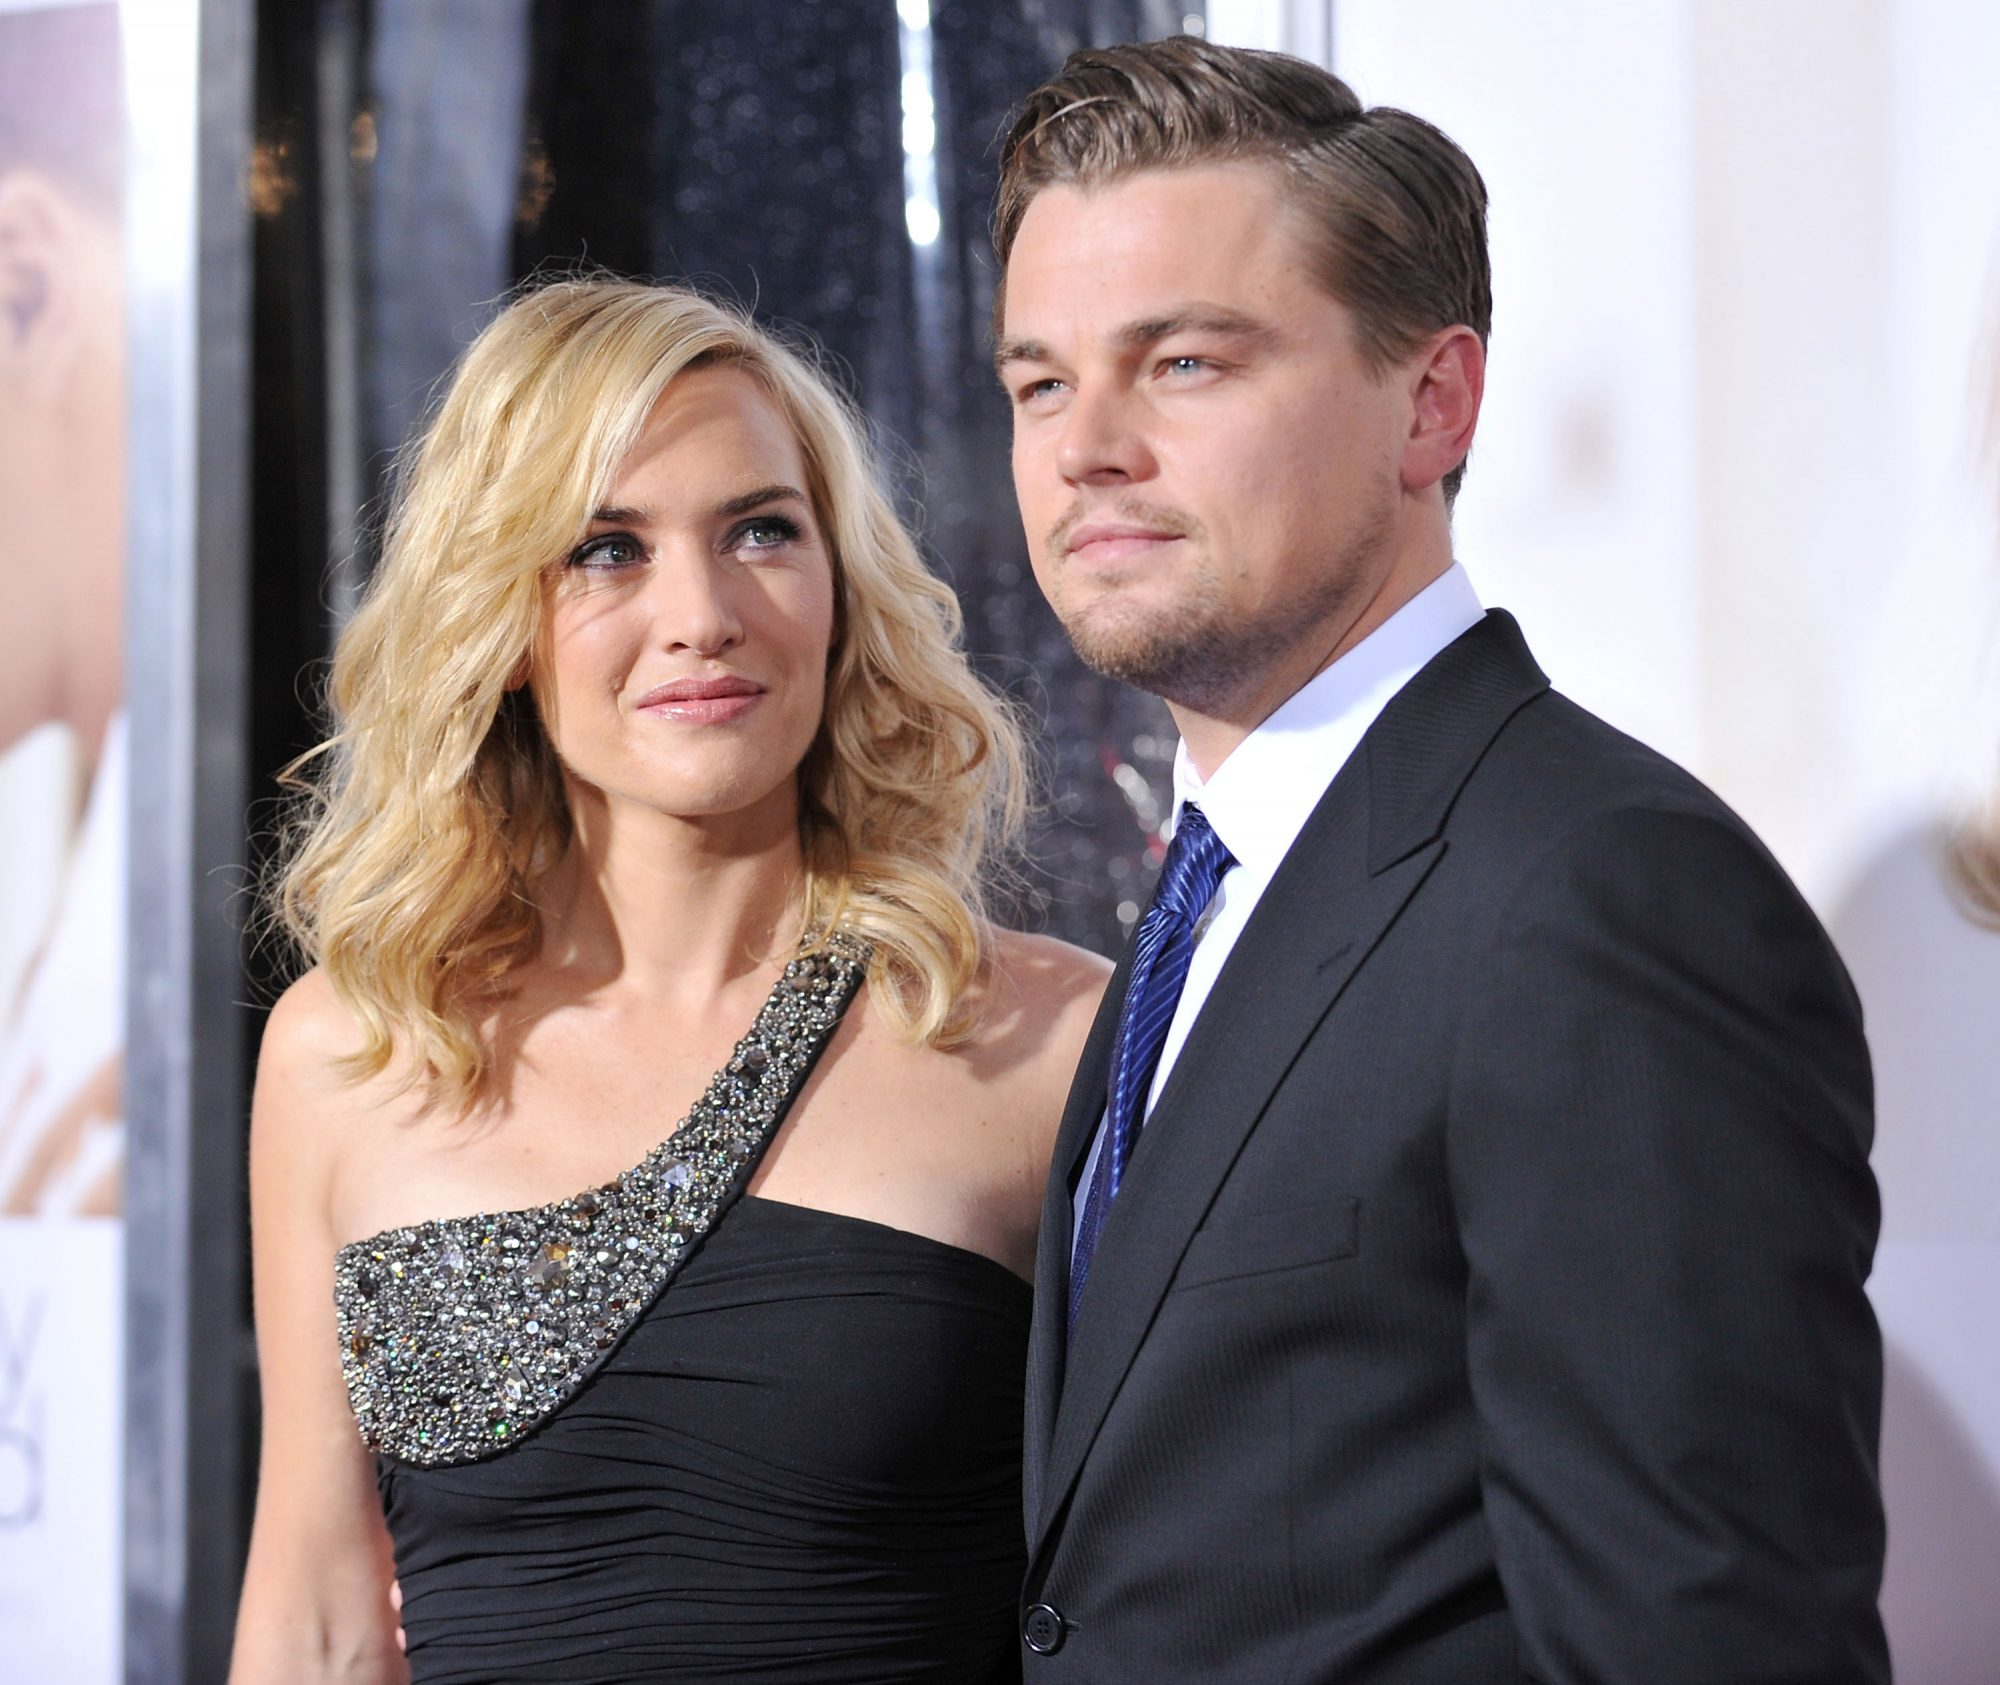 14 Photos That Prove Kate Winslet and Leonardo DiCaprio Are the Cutest BFFs in Hollywood